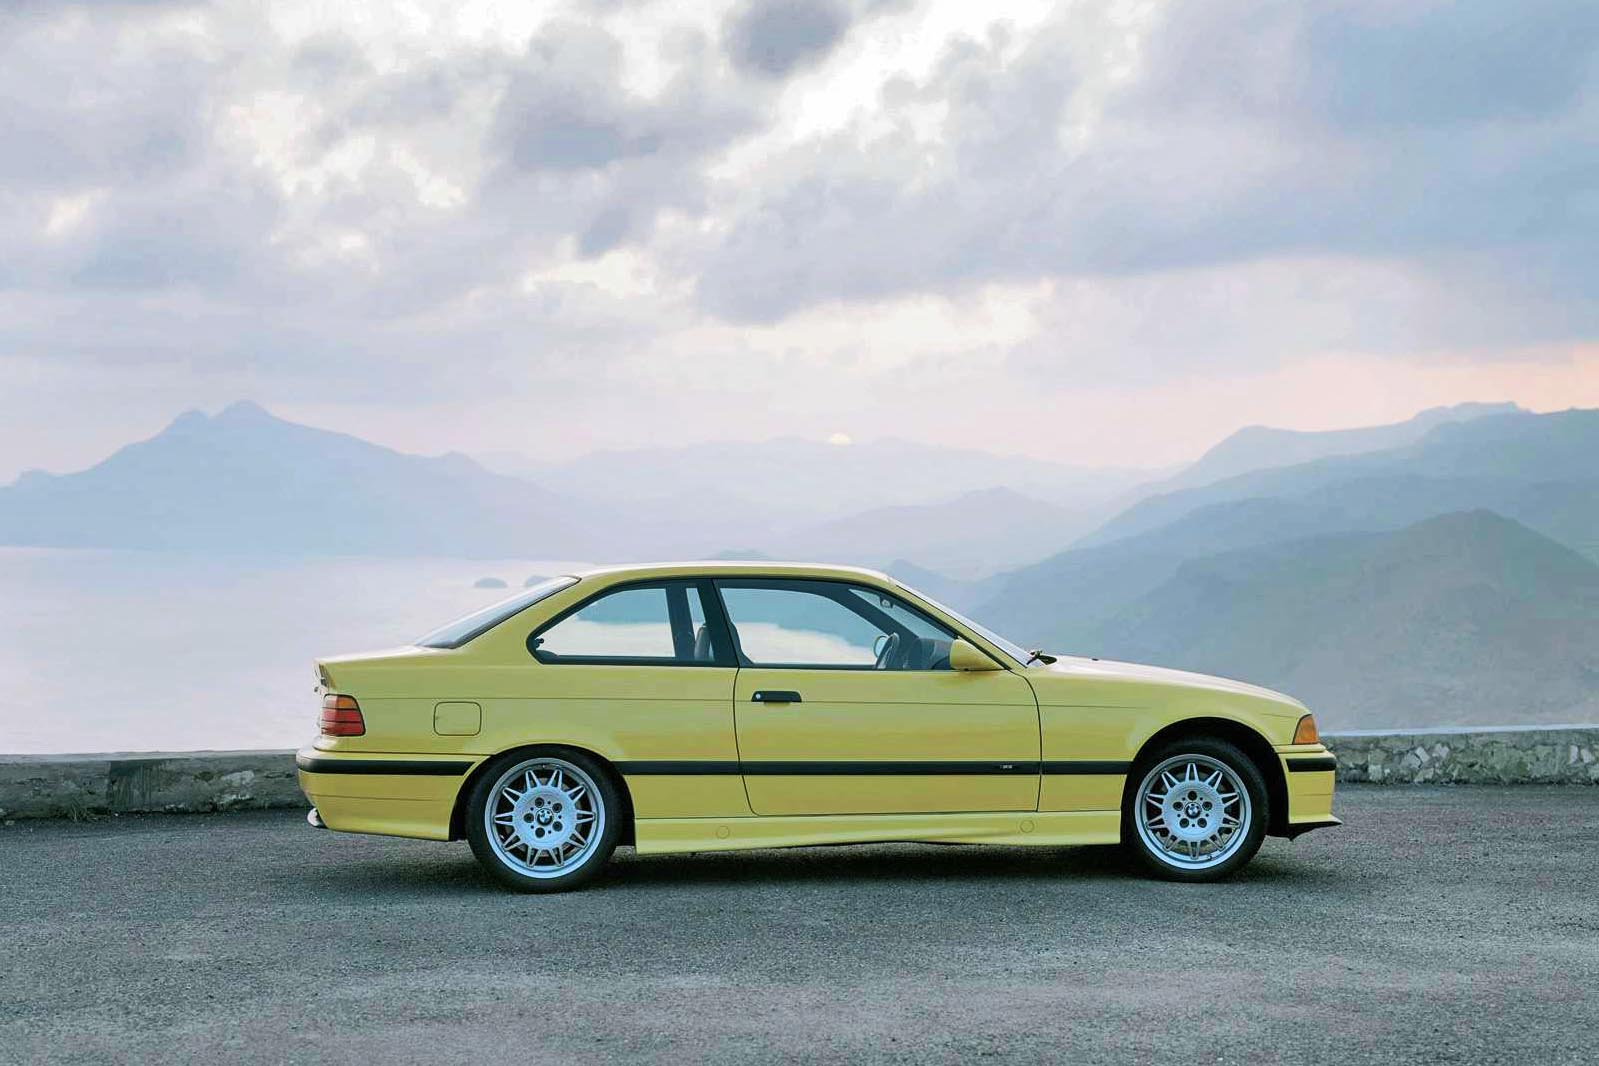 Rarer by far than the Boss – just 45 examples were ever sold – the '94 M3 Euro-spec was BMW's love letter to its Canadian customers. They never got a car this good in the US; to quote the old Red Rose tea ads... pity.